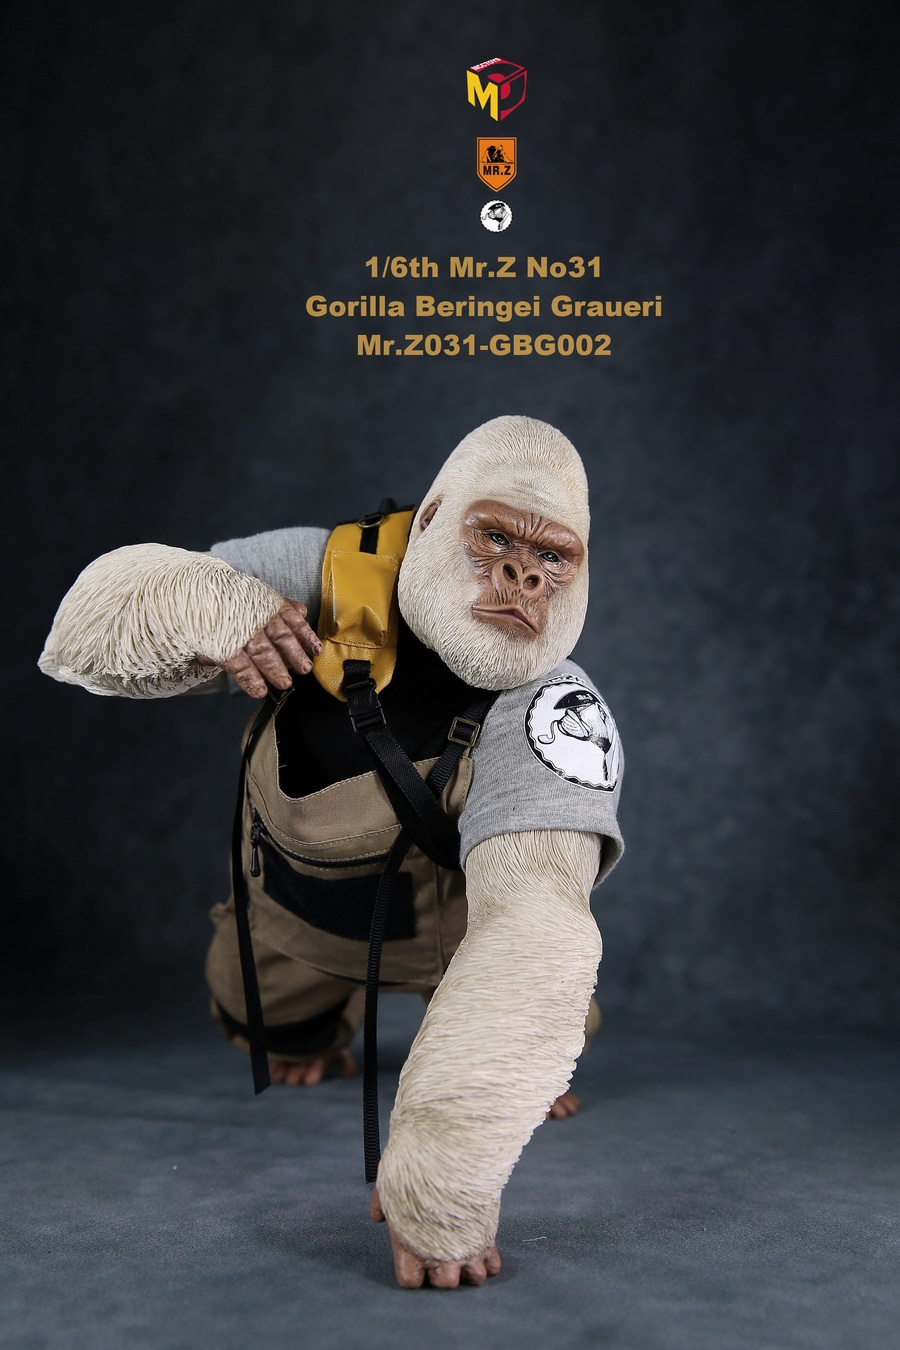 NEW PRODUCT: Mr.Z new product: 1/6 simulation animal model 31st bomb - African lowland gorilla (all 2 heads can be changed to upper limbs) 10110610